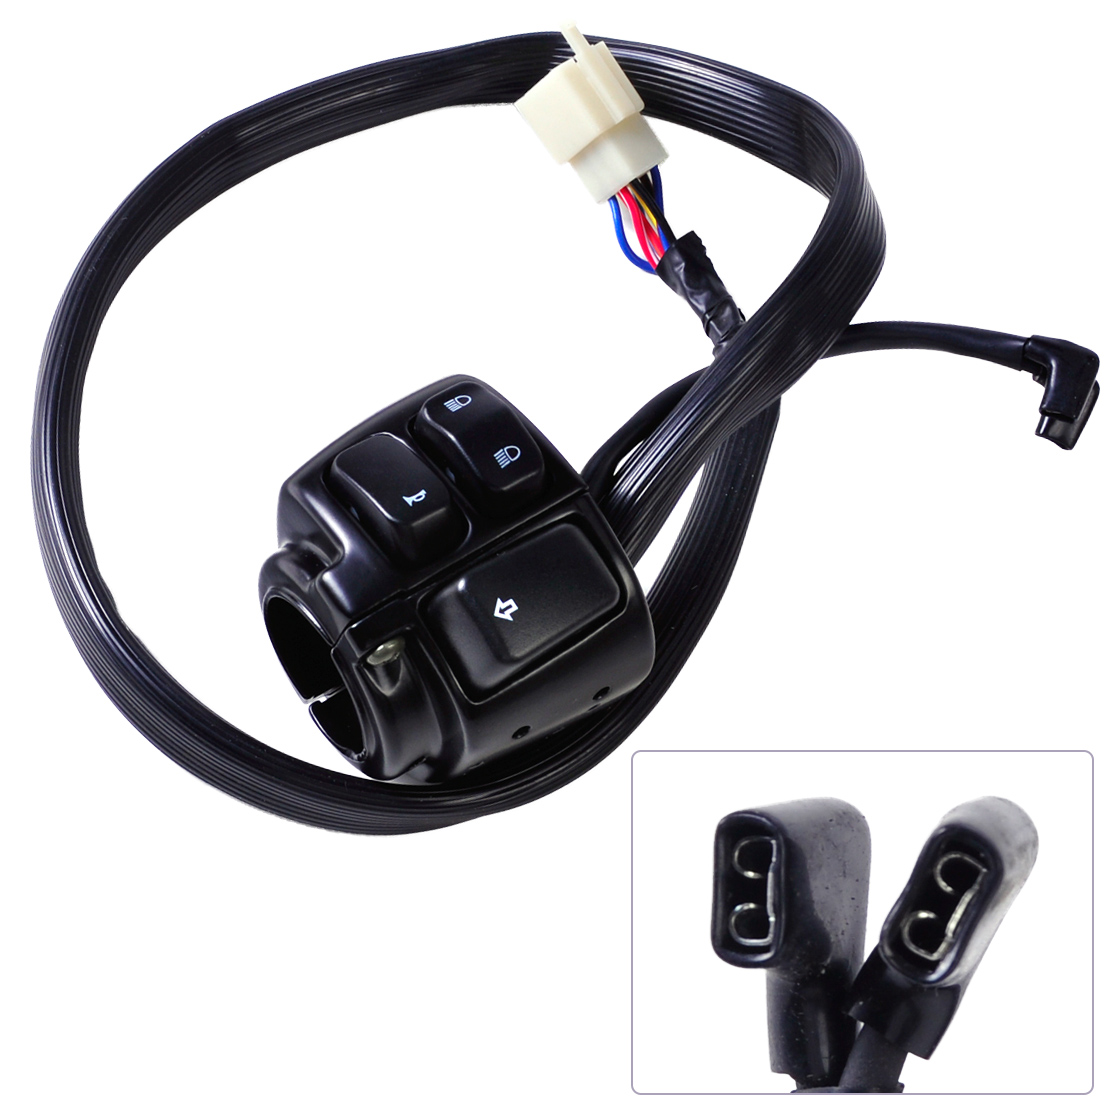 CITALL Motorcycle 1 Handlebar Horn Hi/Lo Beam Left Turn Signals Switch Wire Harness for Harley Davidson Softail Dyna Sportster